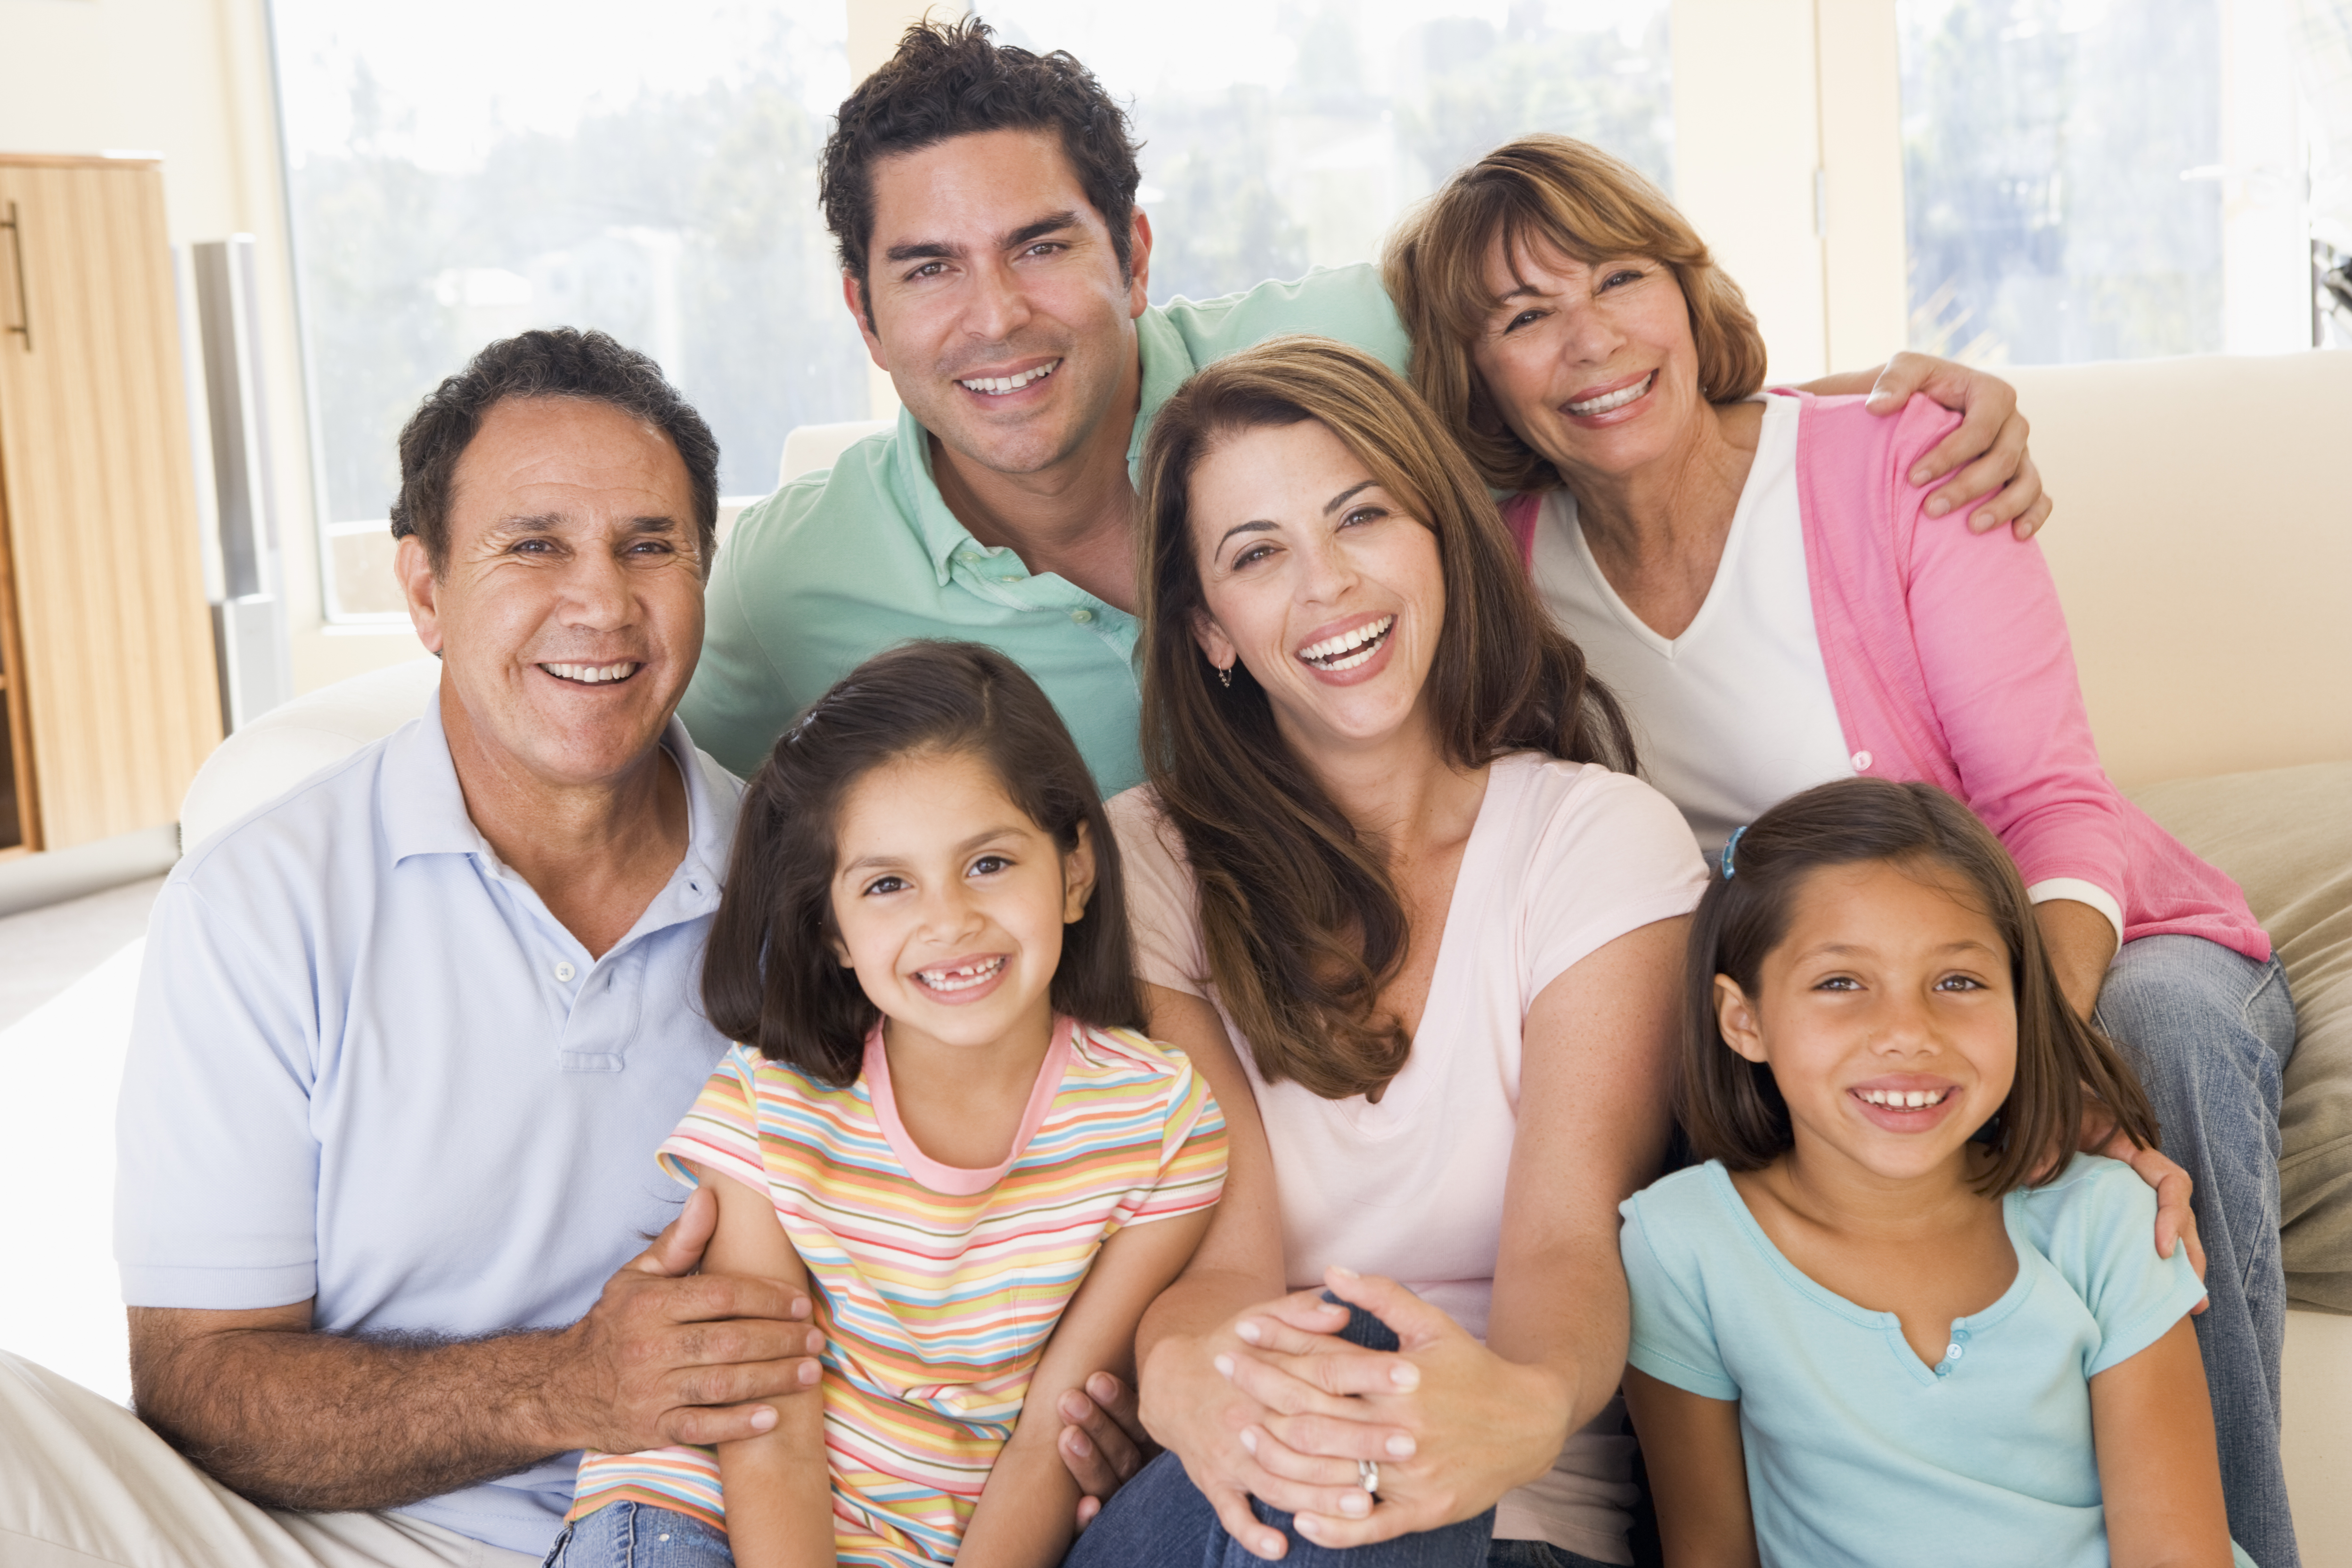 How much life insurance should I purchase?